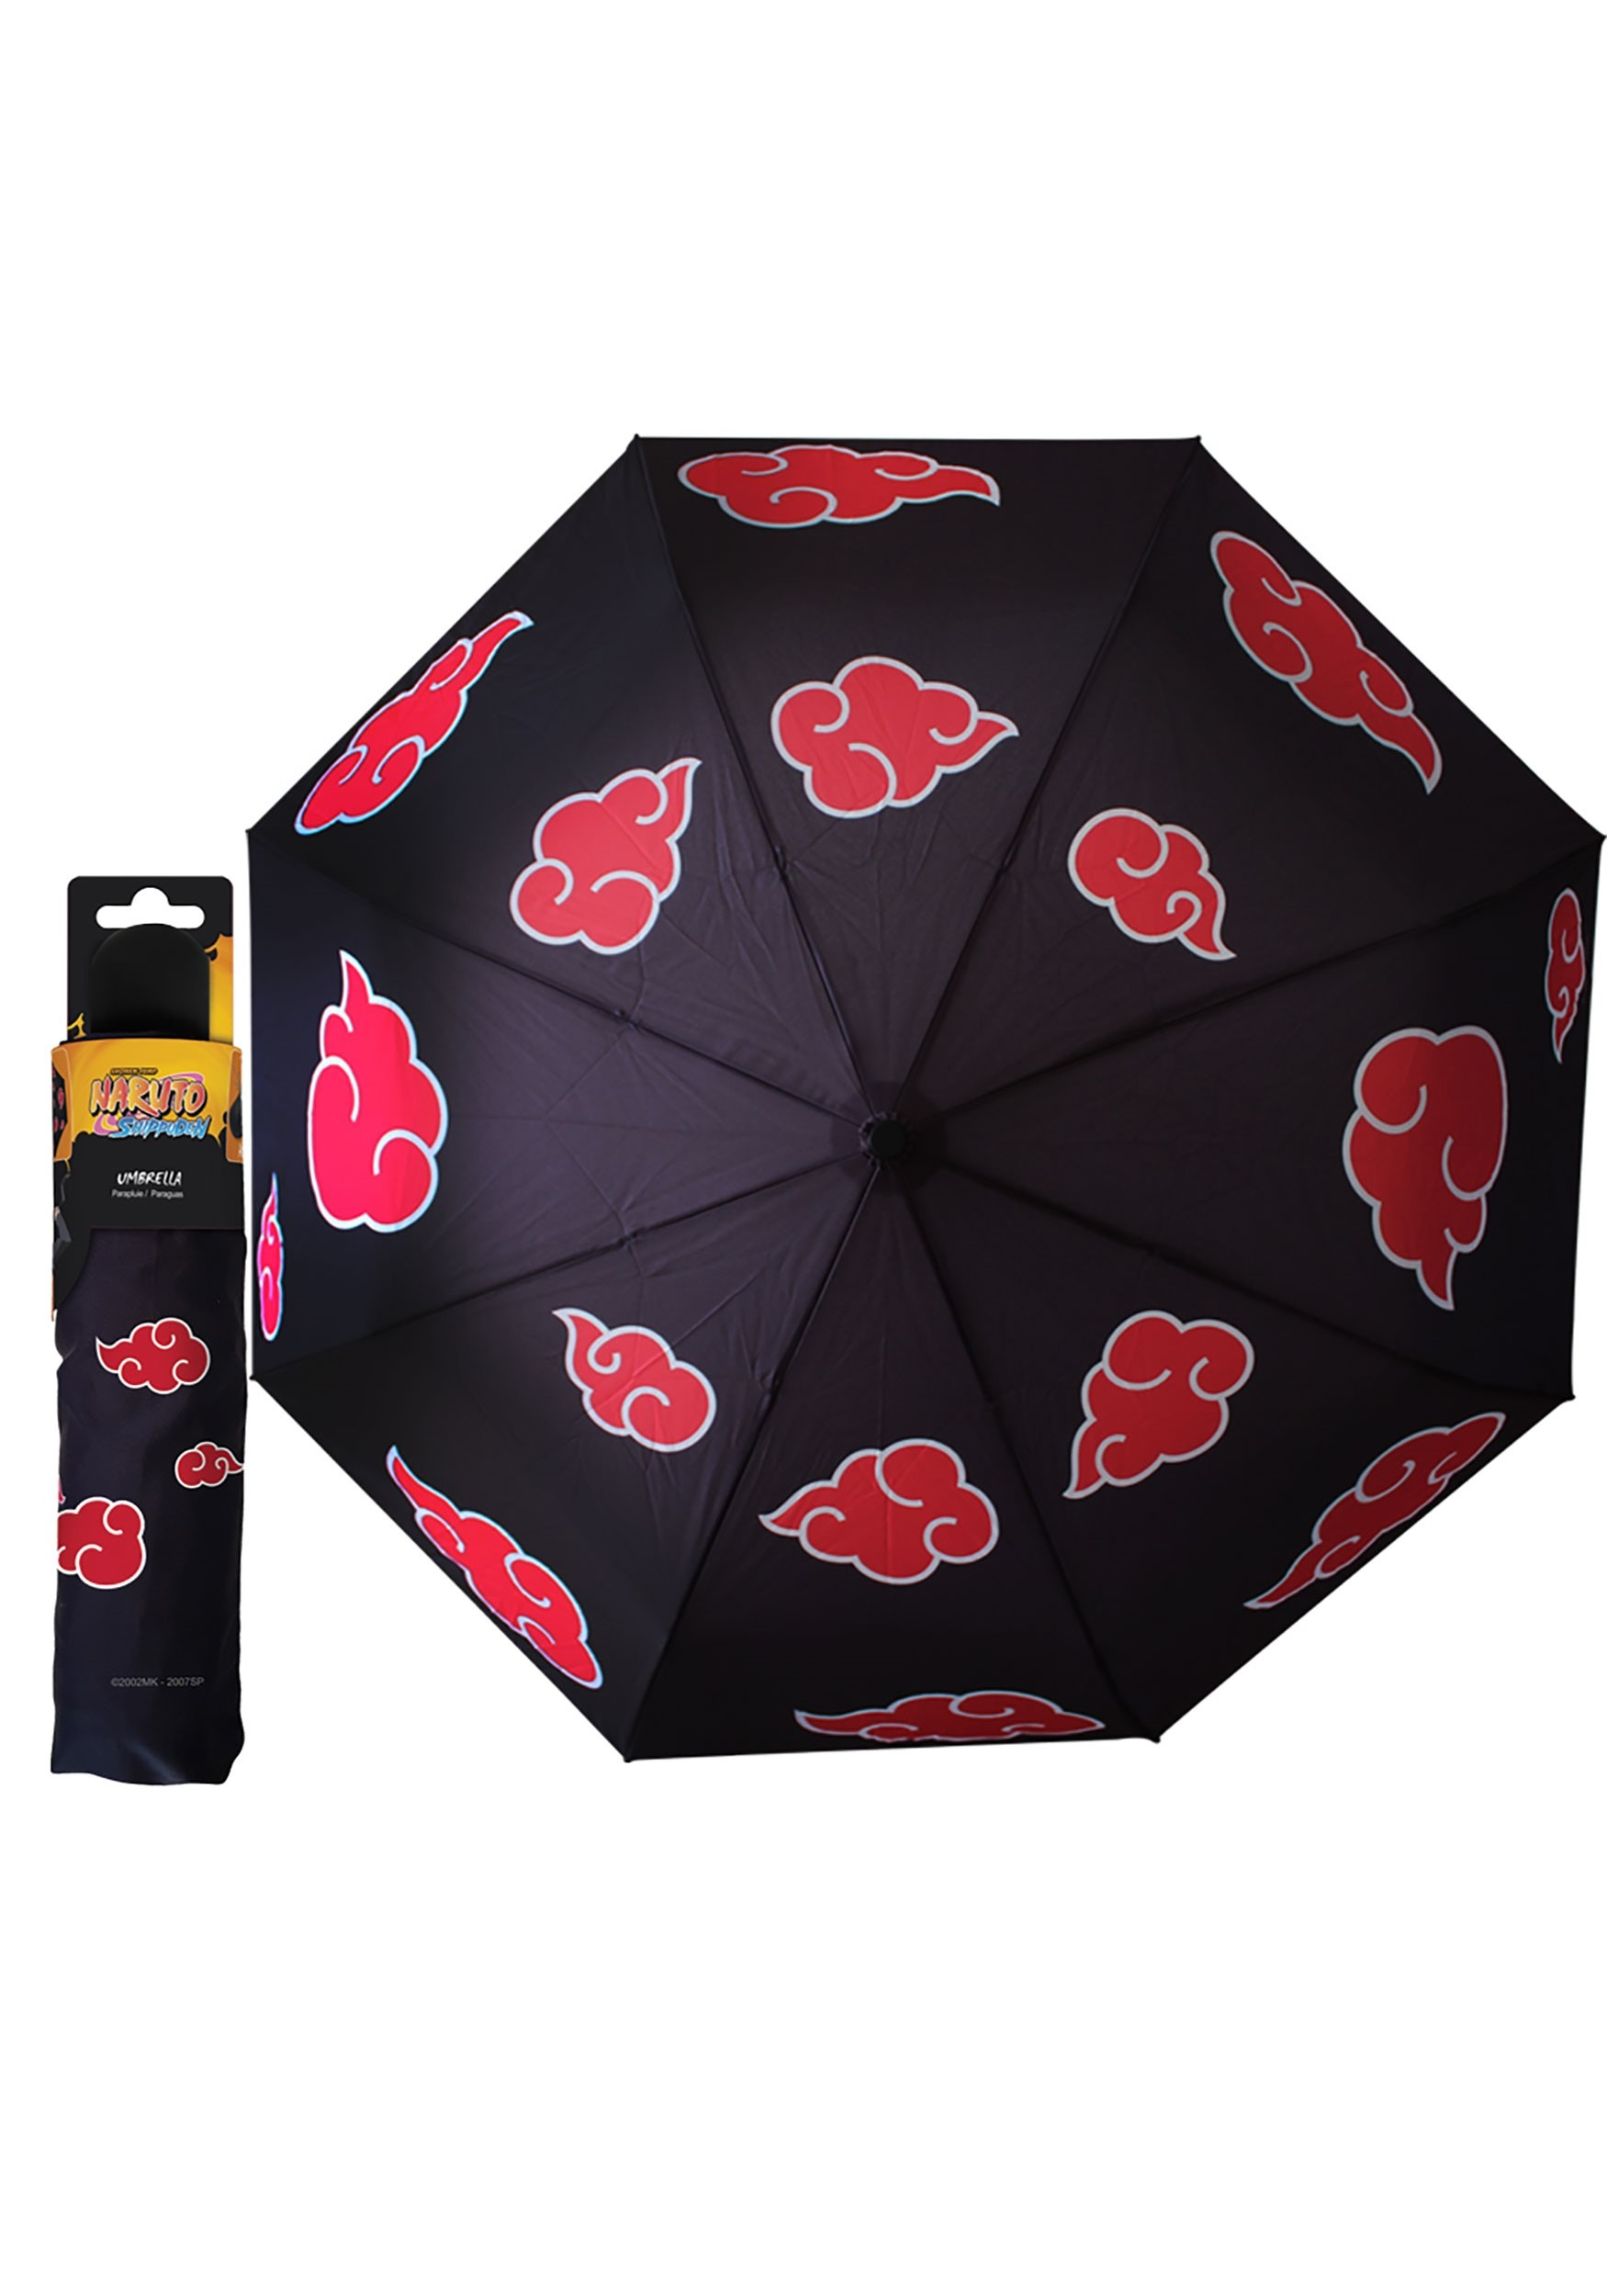 The Naruto Umbrella